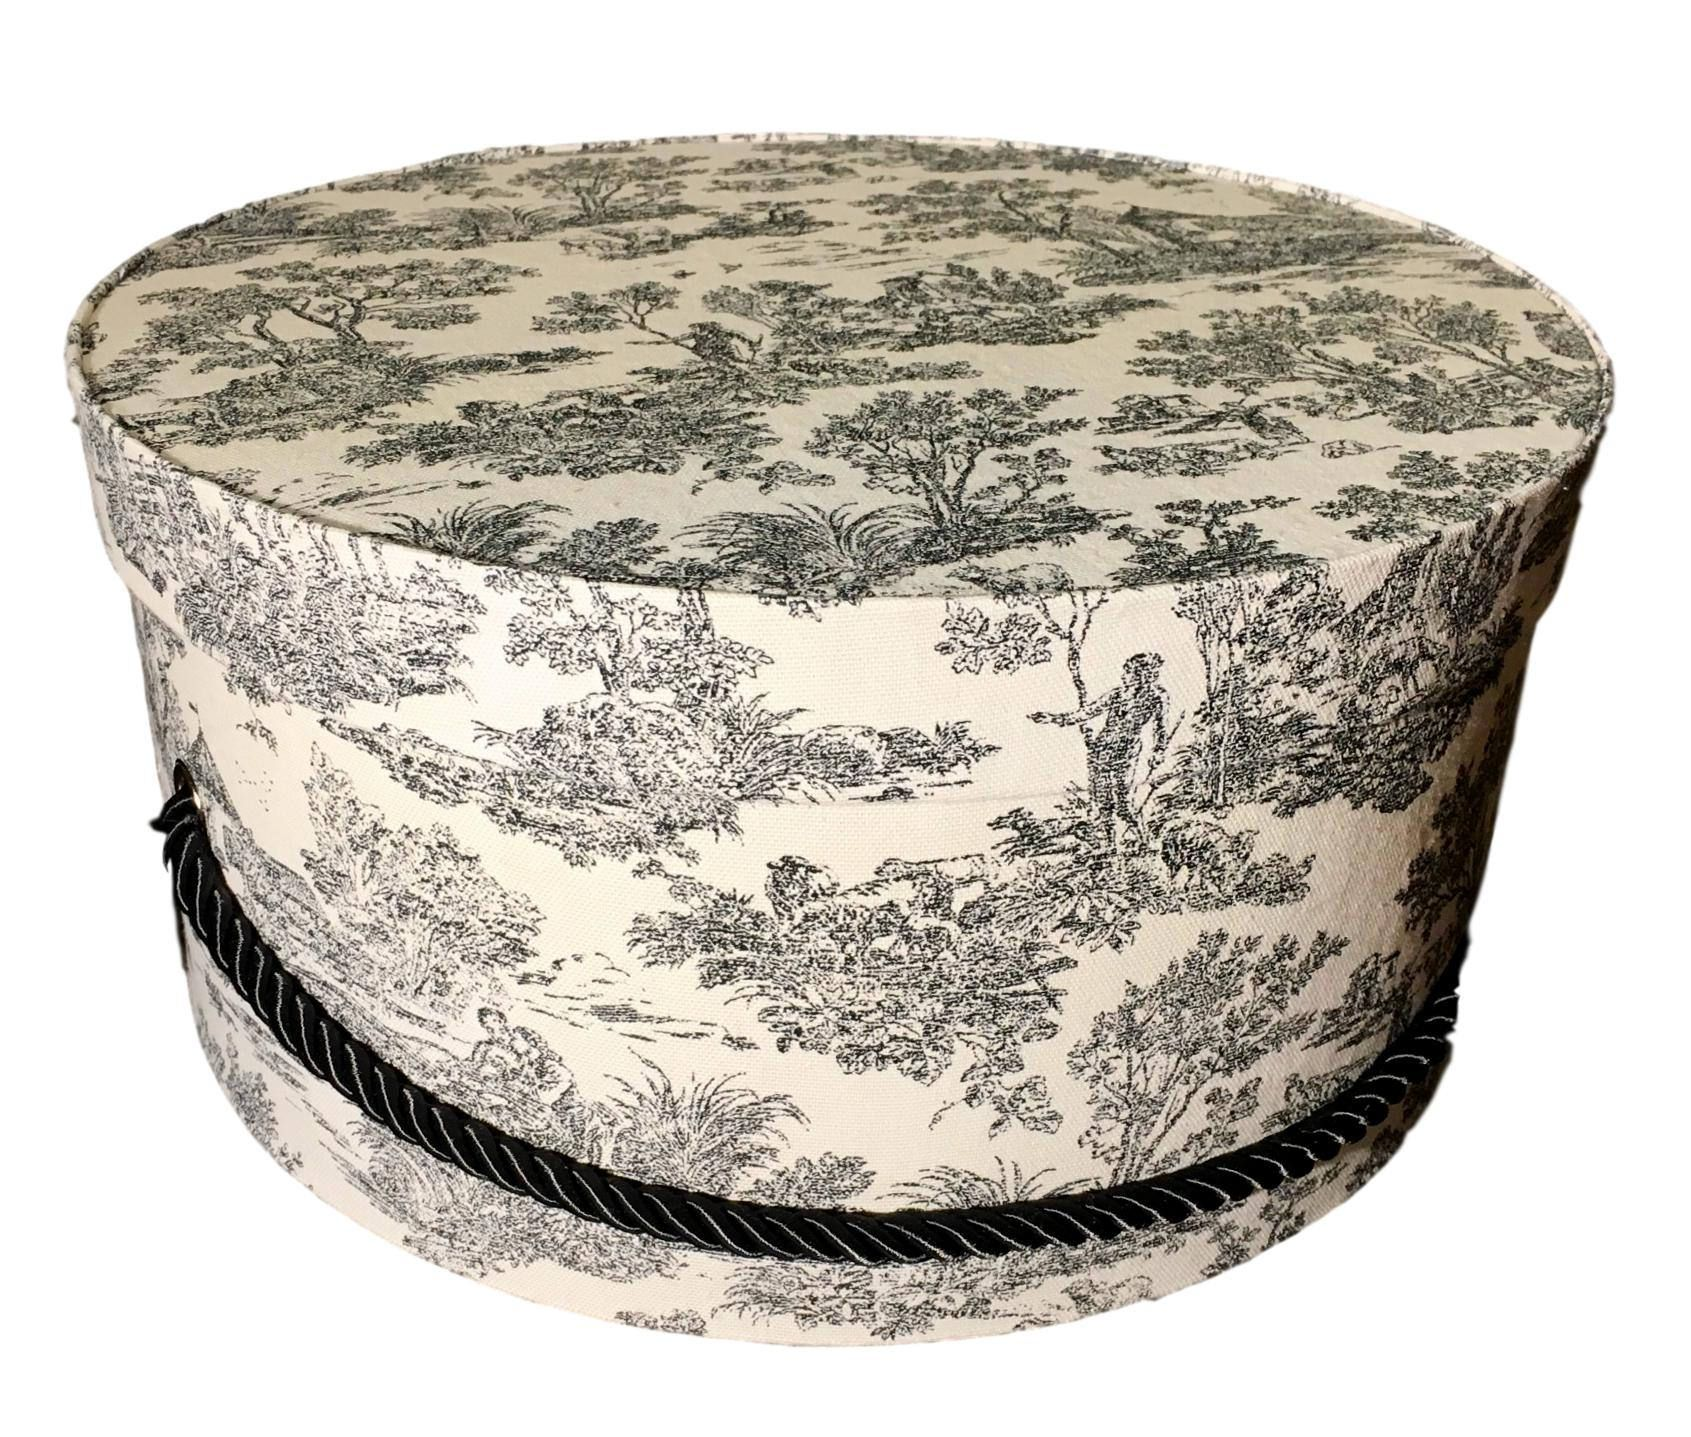 Hat Box In French Black And White Toile Large Decorative Fabric Covered Hat Boxes Round Storage Box Keepsake Boxe Hat Boxes Black Toile Fabric Covered Boxes